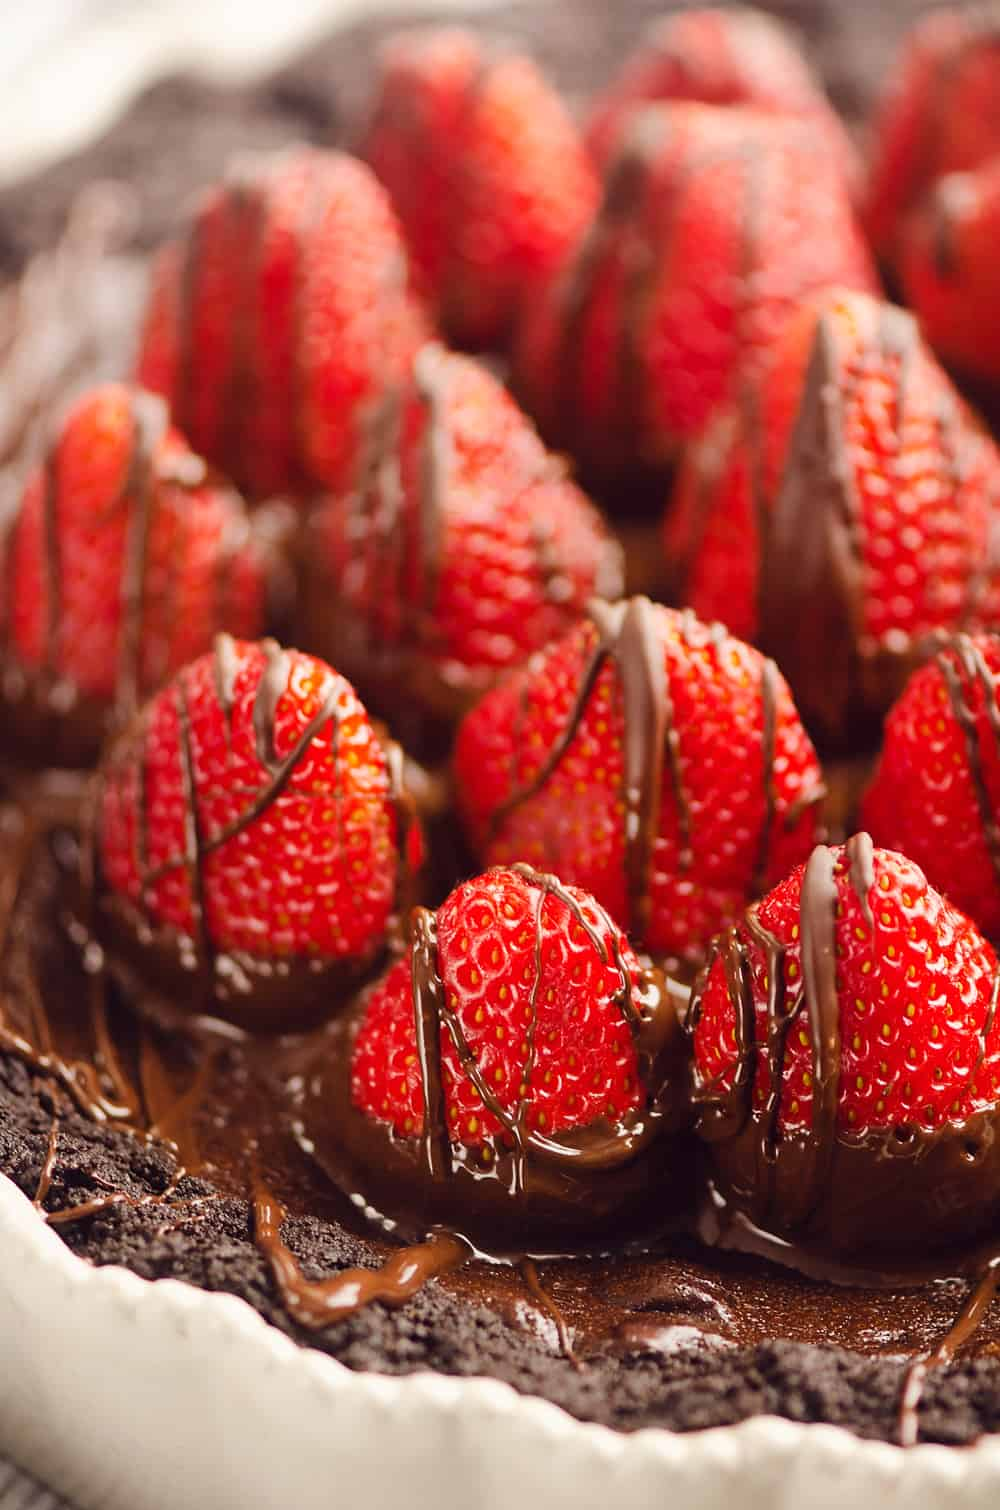 Chocolate Covered Strawberry Ganache Tart in pan